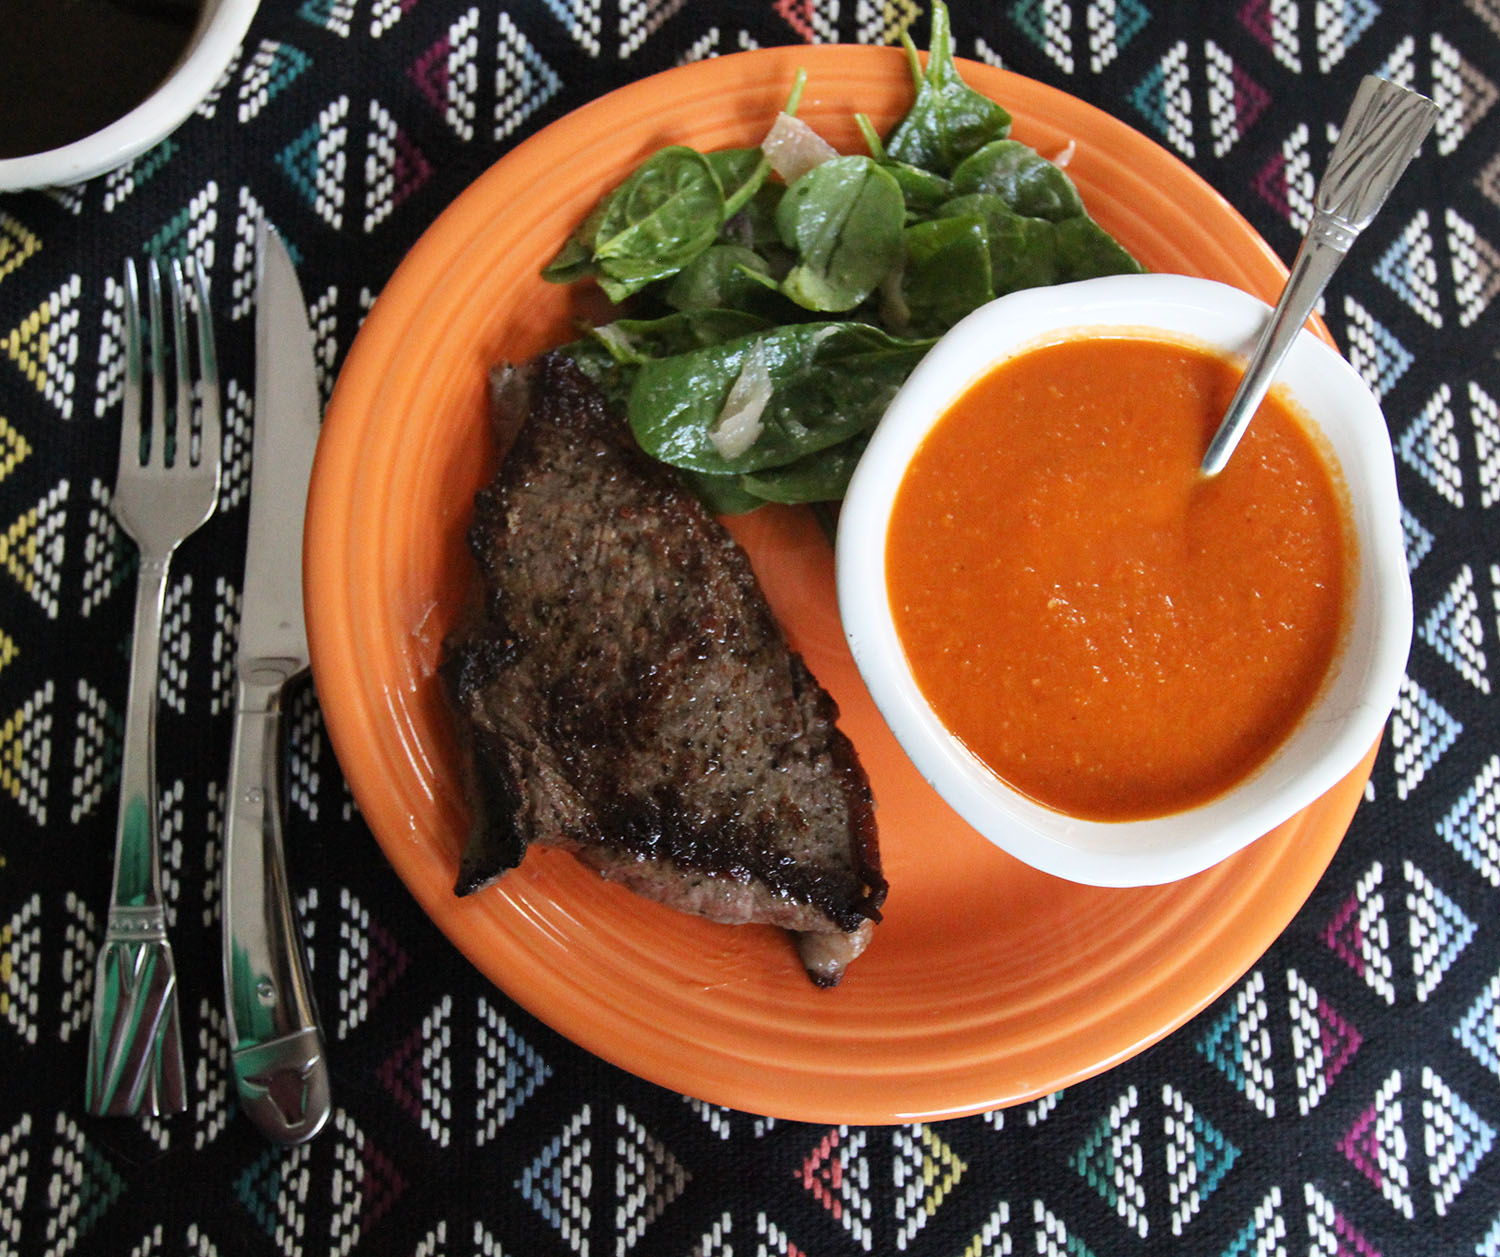 SIRLOIN STEAK WITH TOMATO SOUP AND A SPINACH AND SHALLOT SALAD